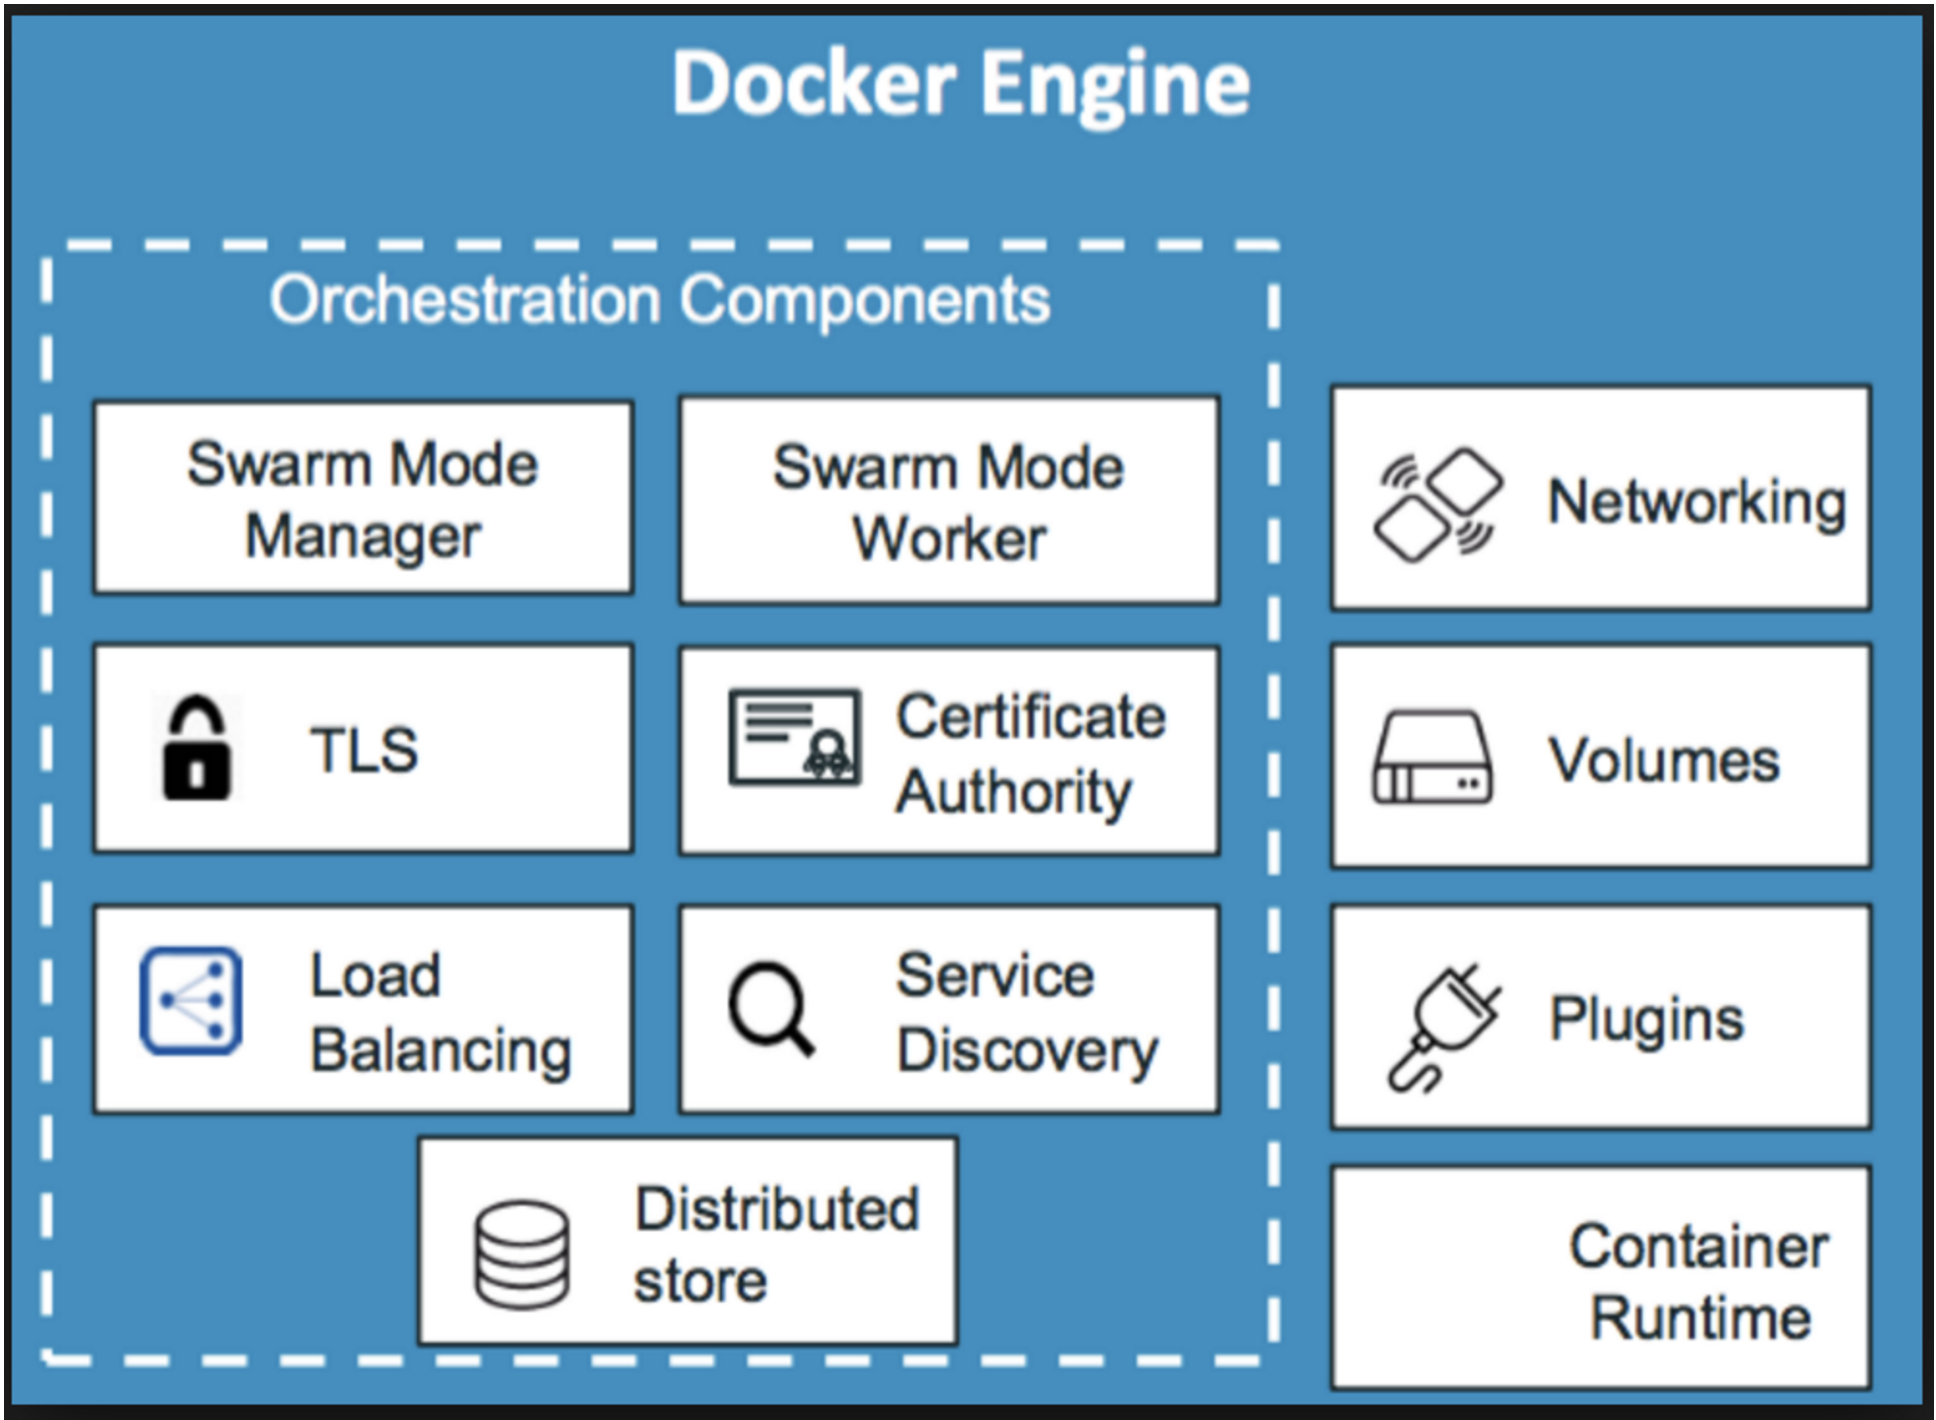 docker-engine.png